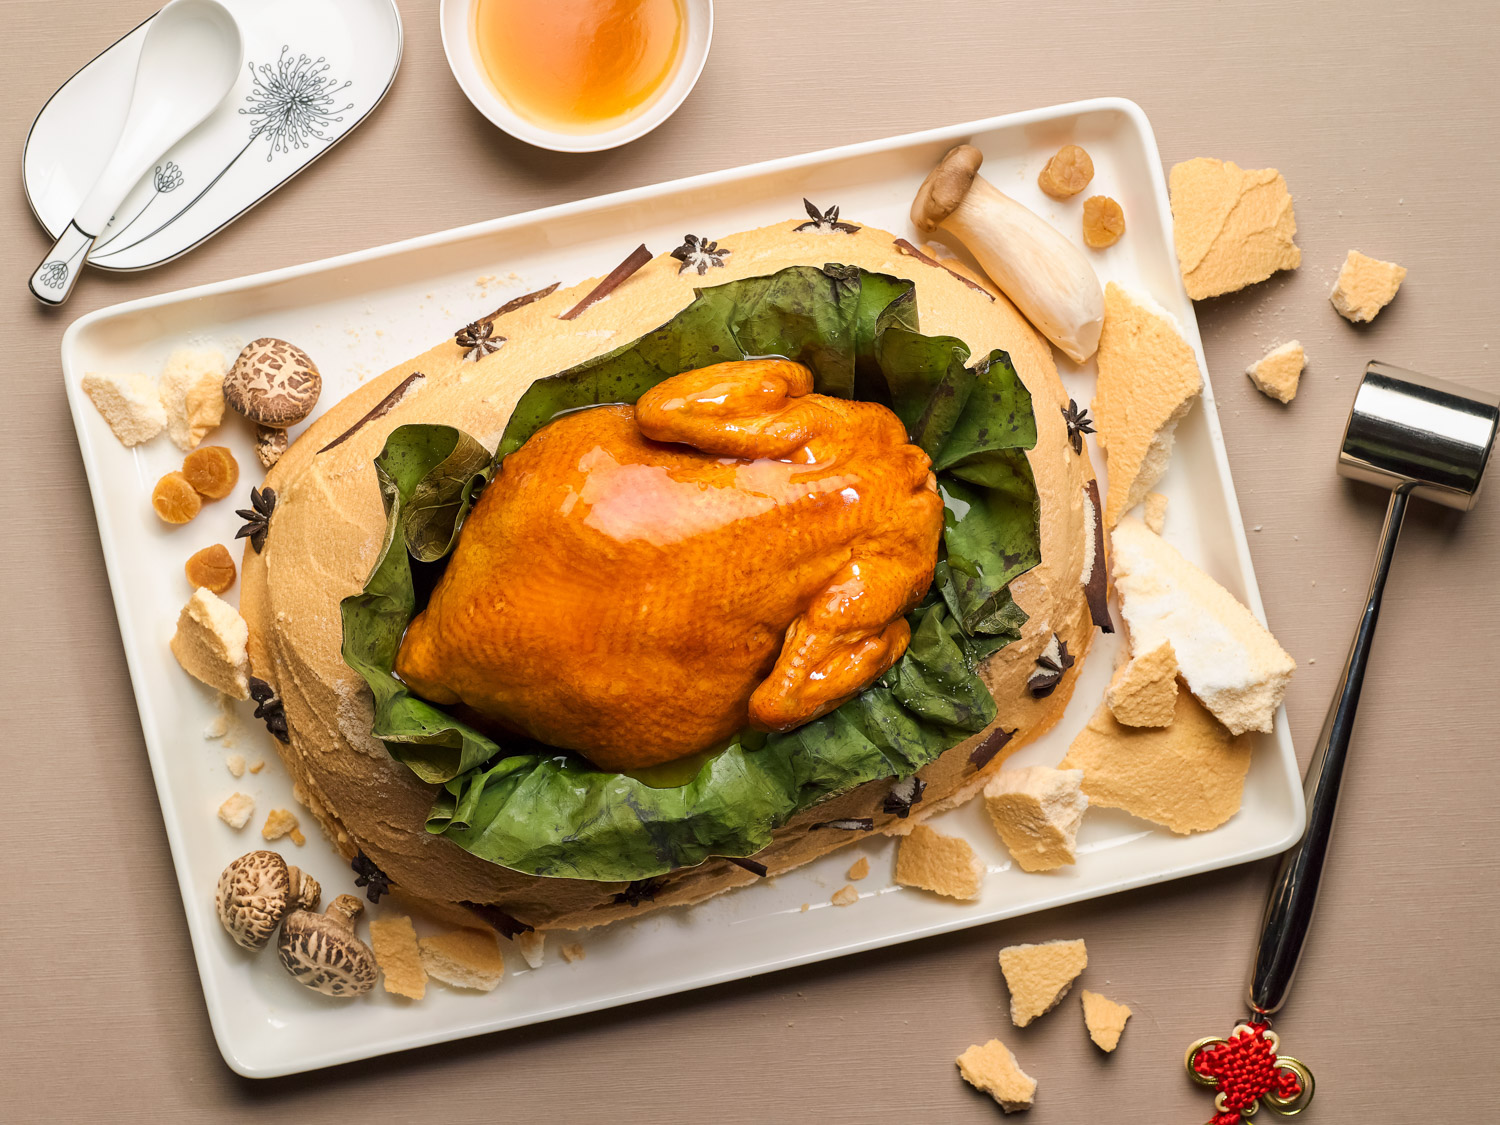 Salt-Crusted Traditional Stewed Chicken with Dried Scallops in Lotus Leaf ( 荷香元贝富贵鸡 )